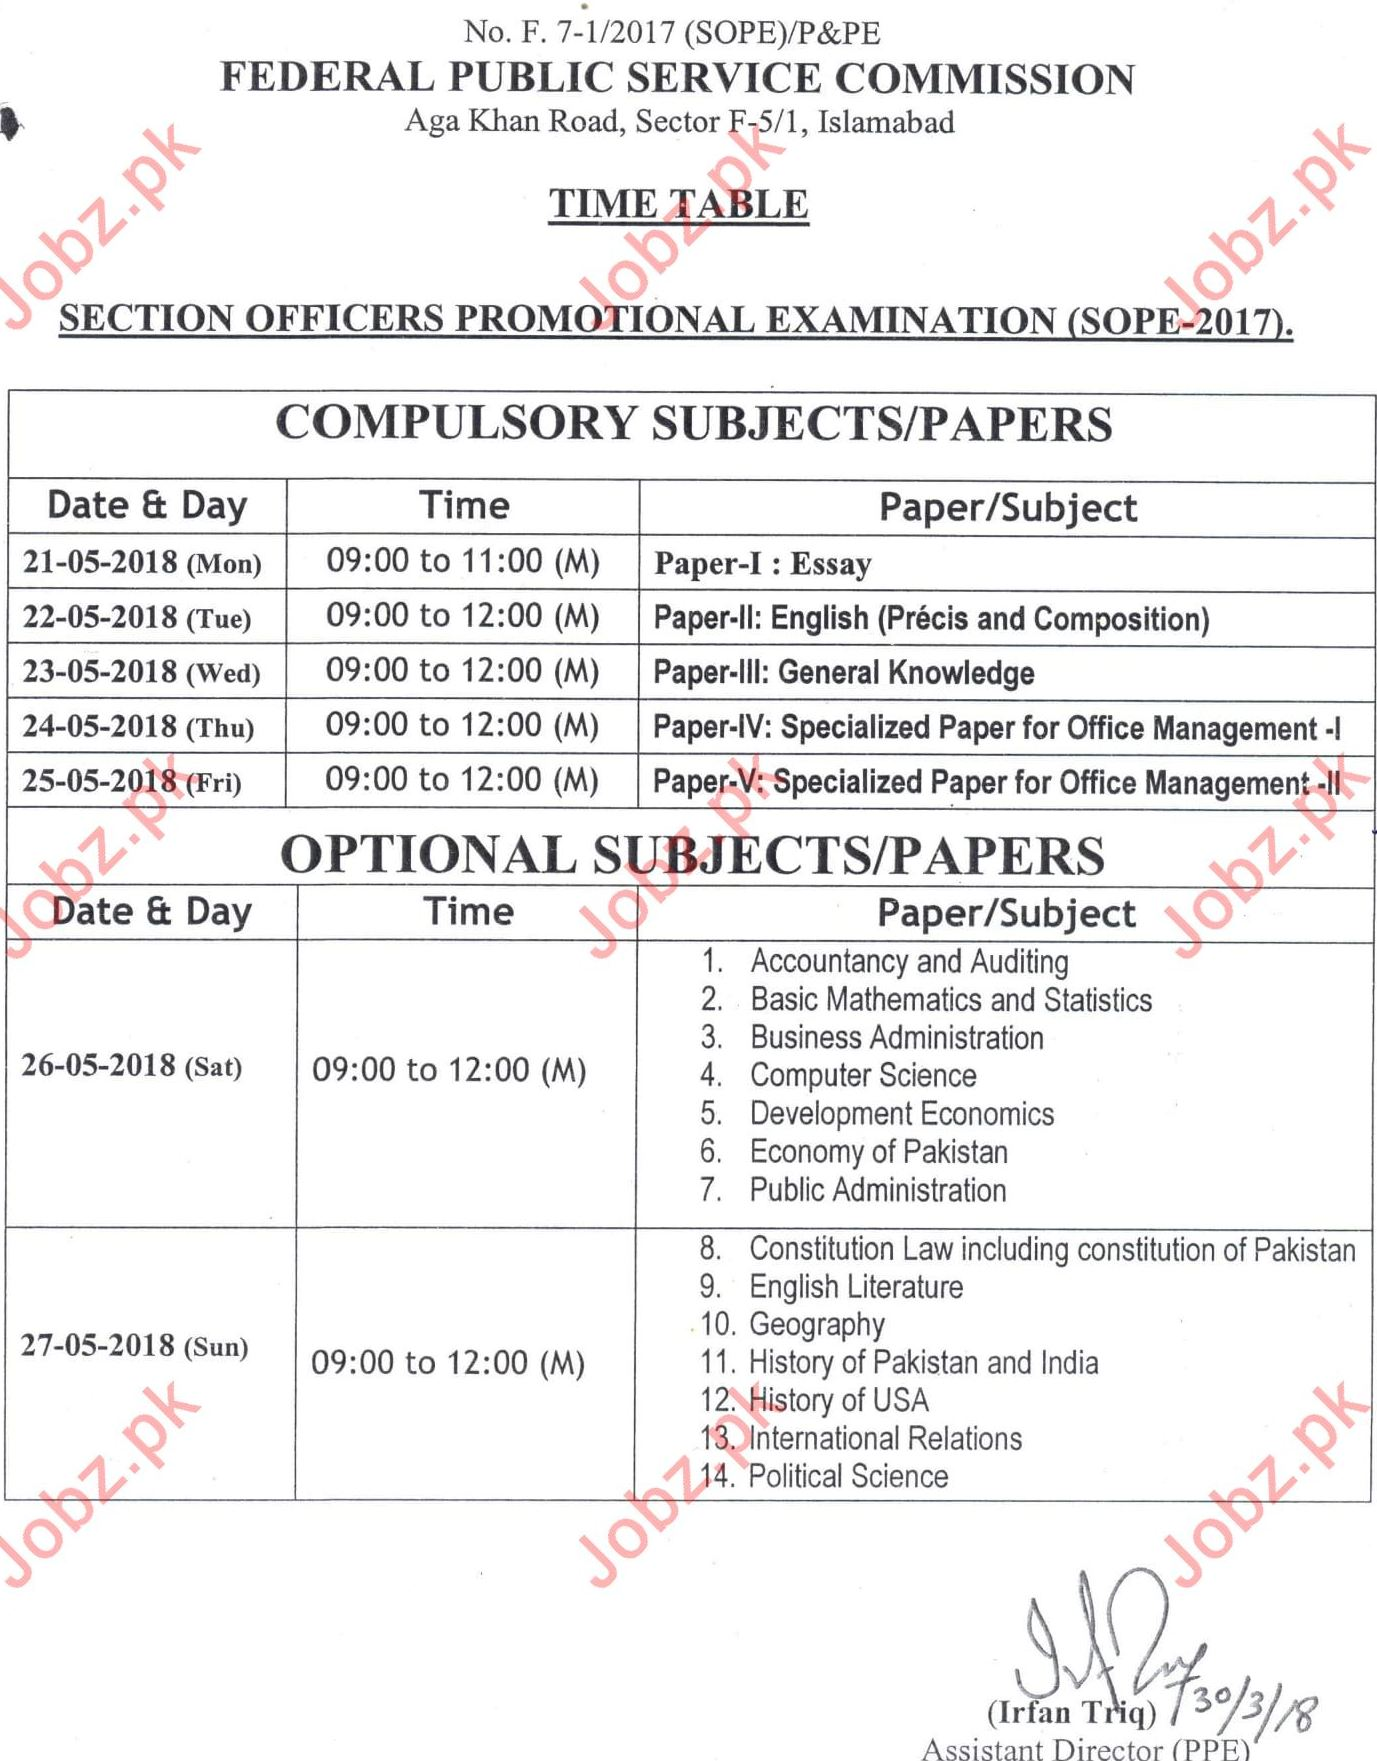 FPSC Federal Public Service Commission Written Test 2018